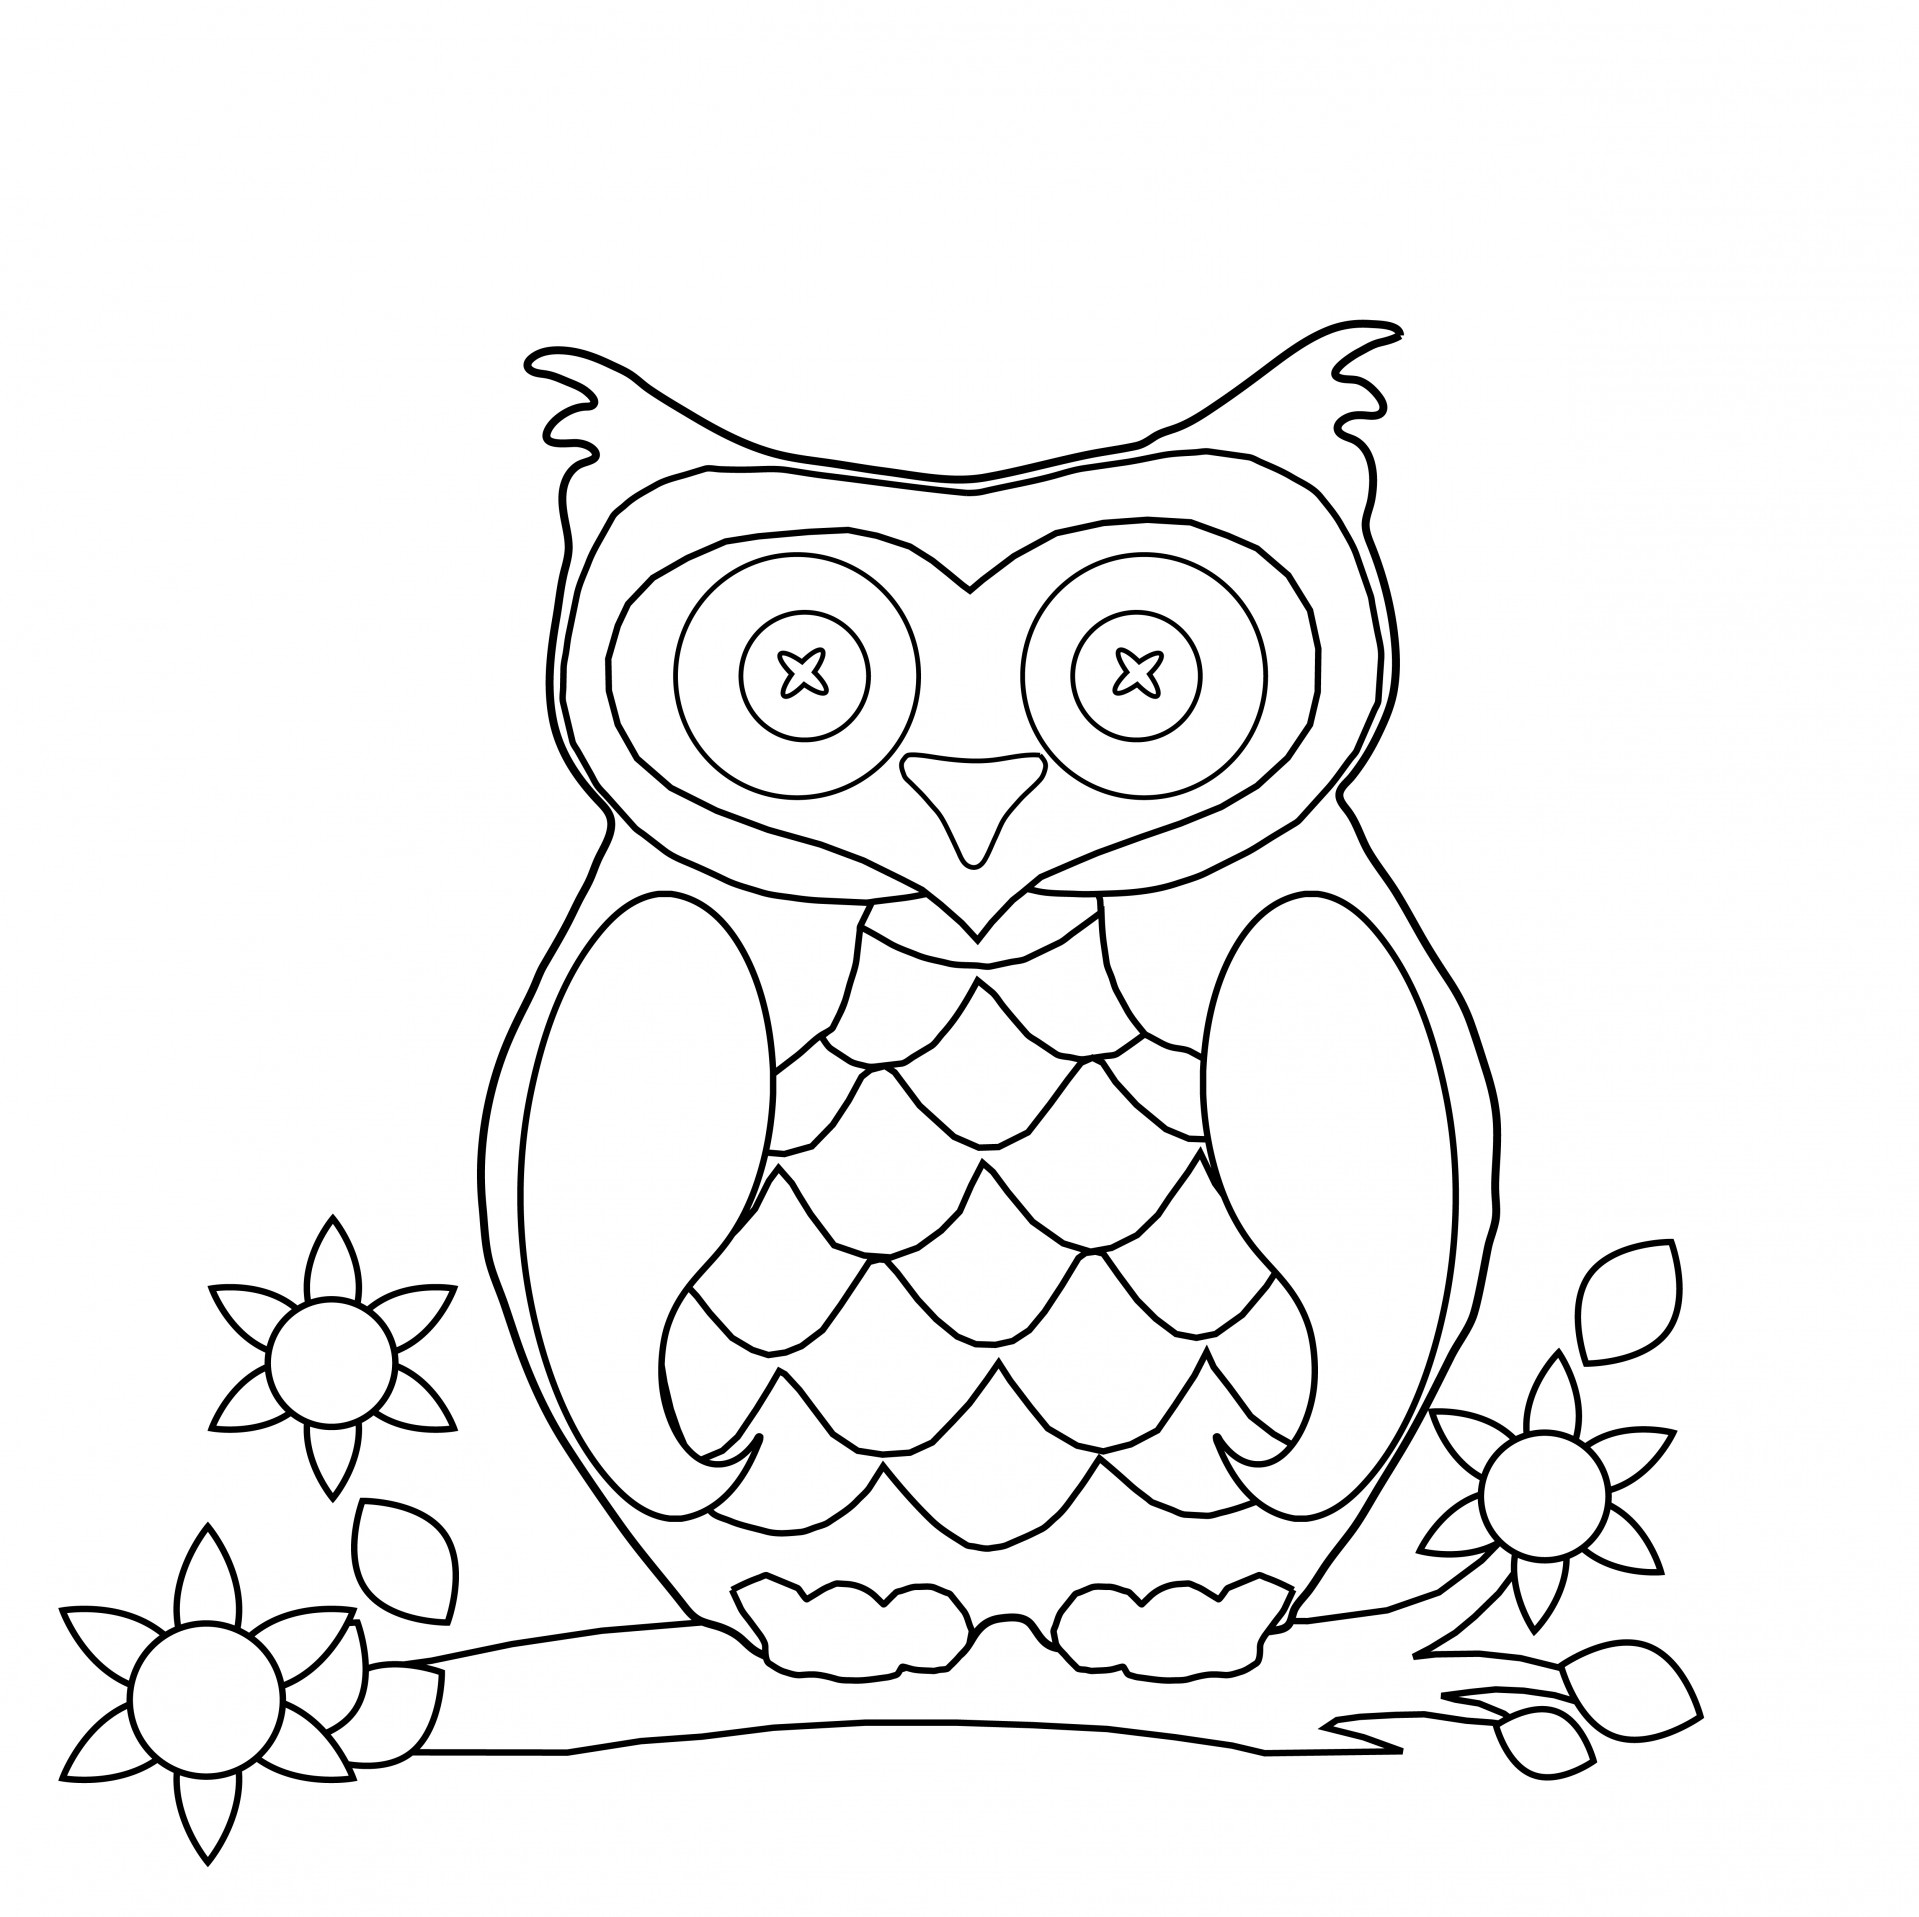 coloring pages for adults printable floral coloring pages for adults best coloring pages for for coloring printable adults pages